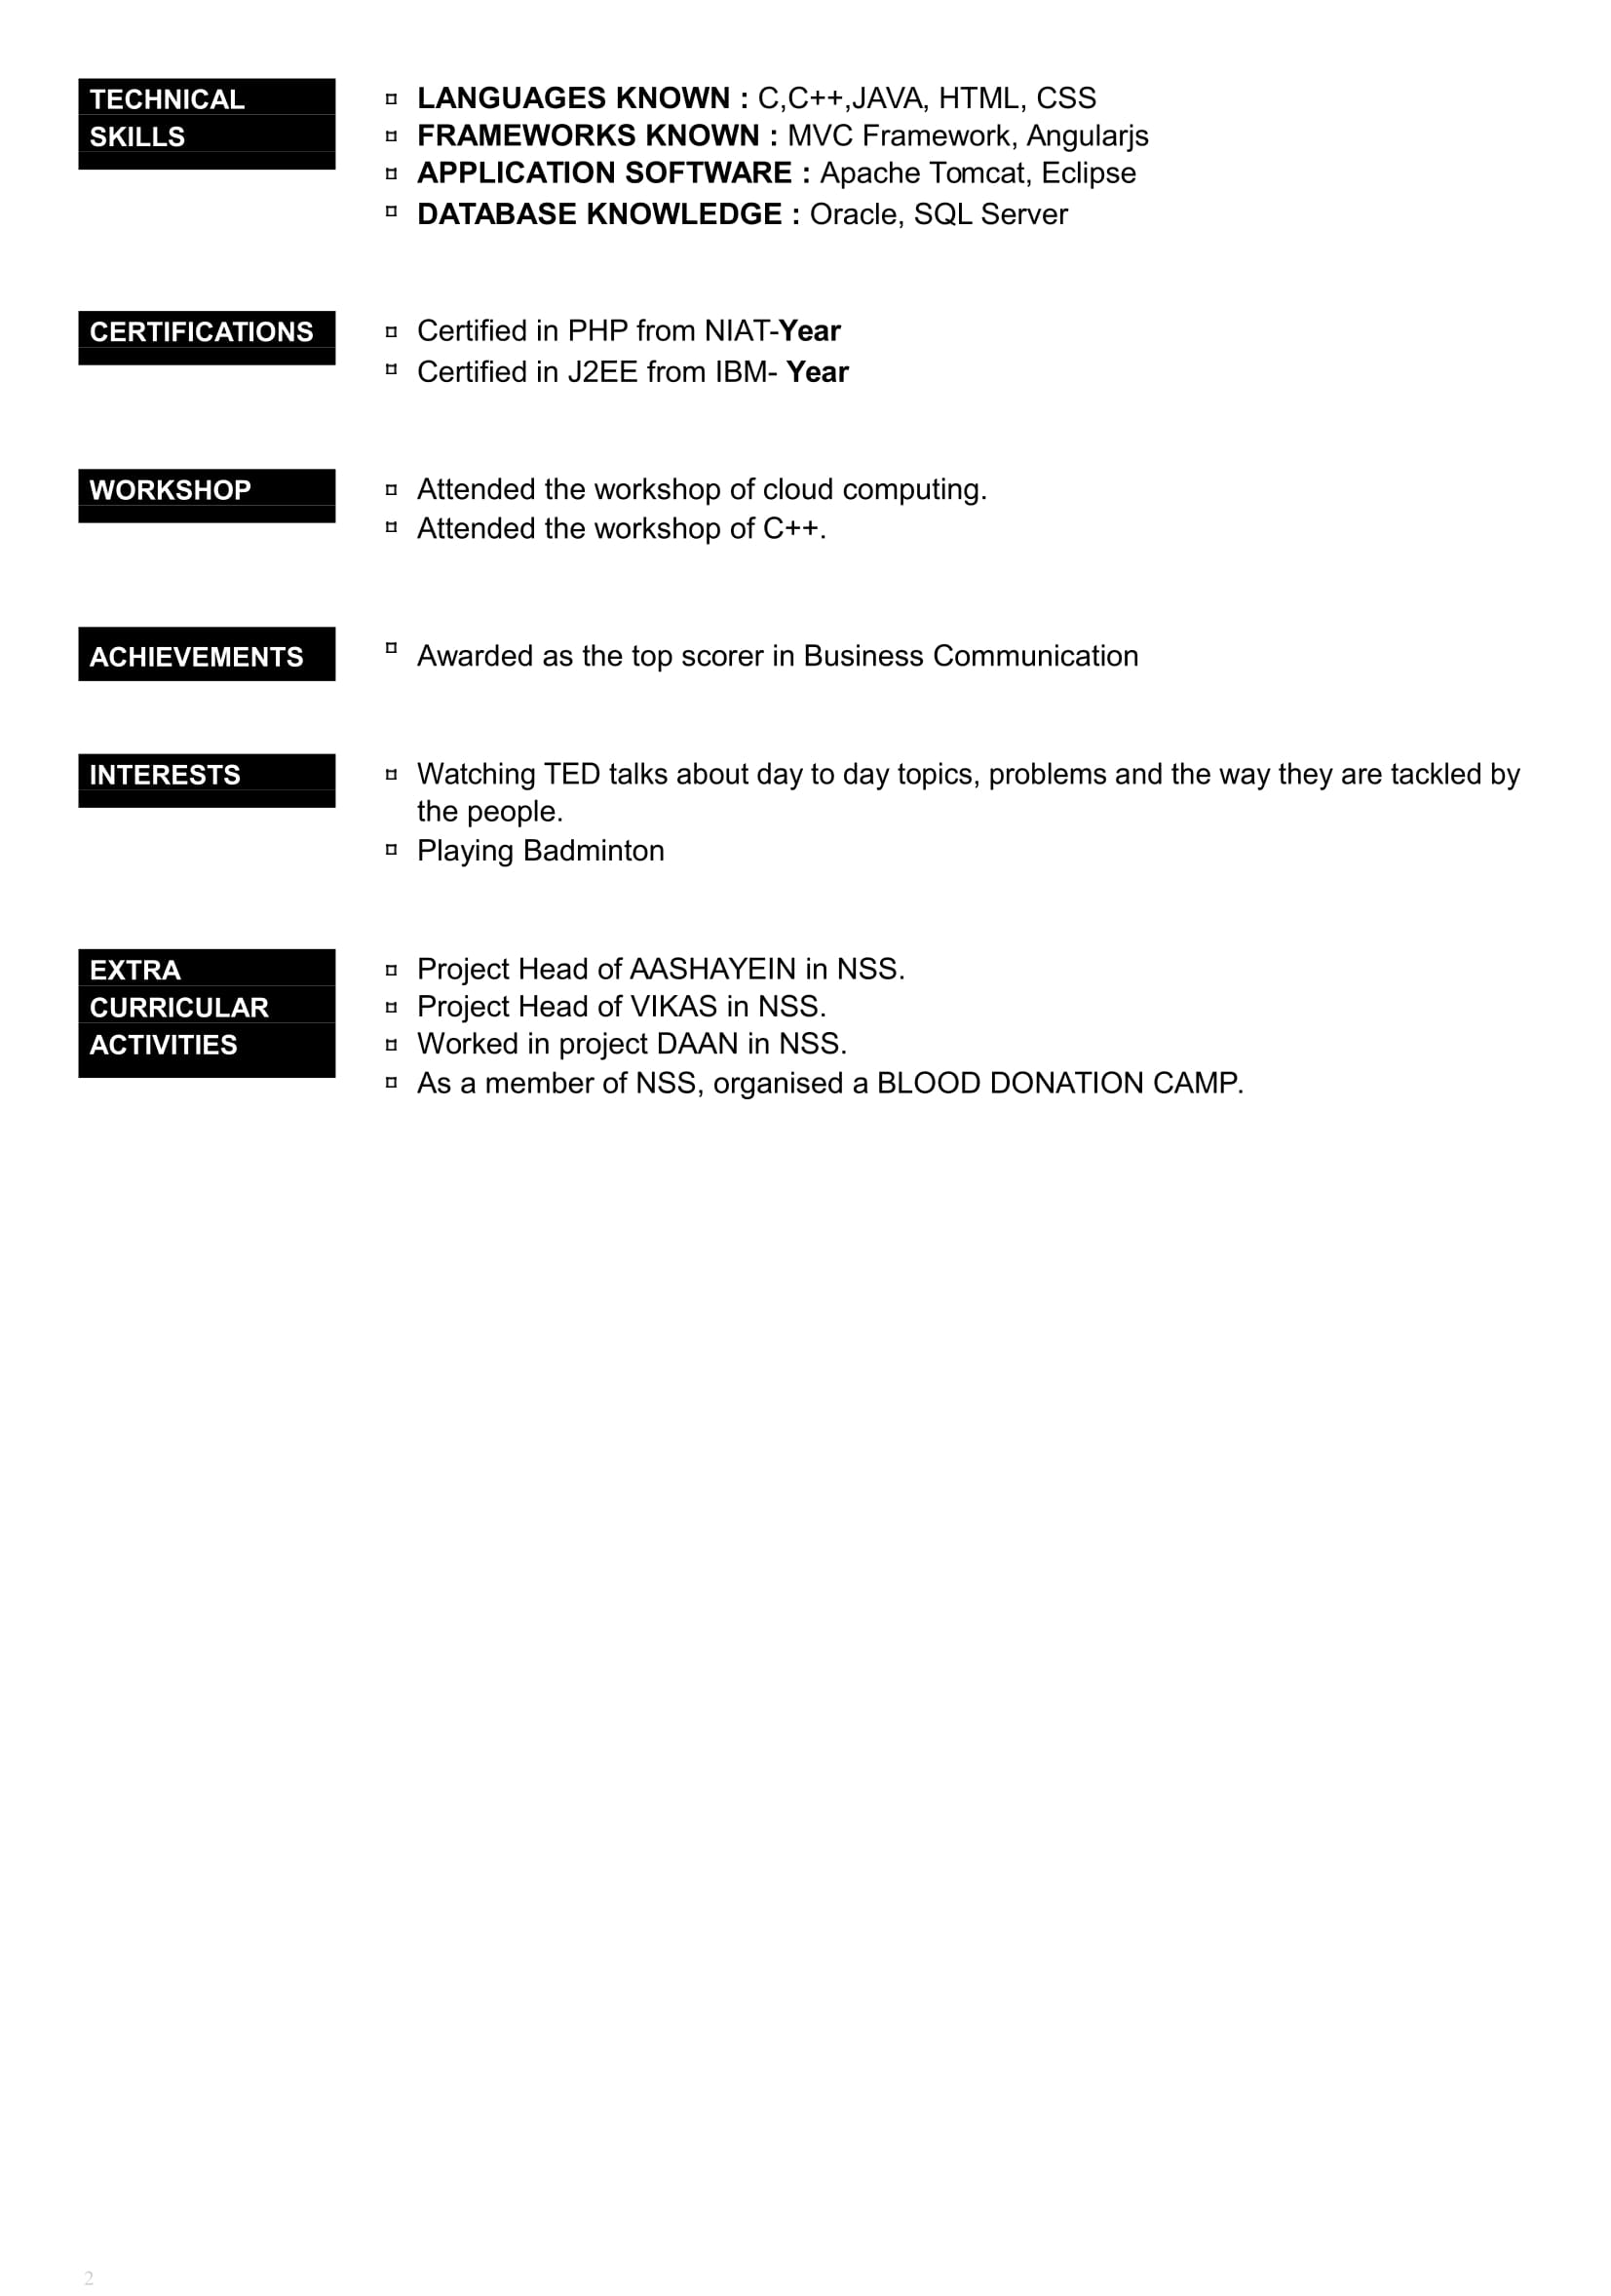 Resume Formats For 2020 32 Free Resume Templates For